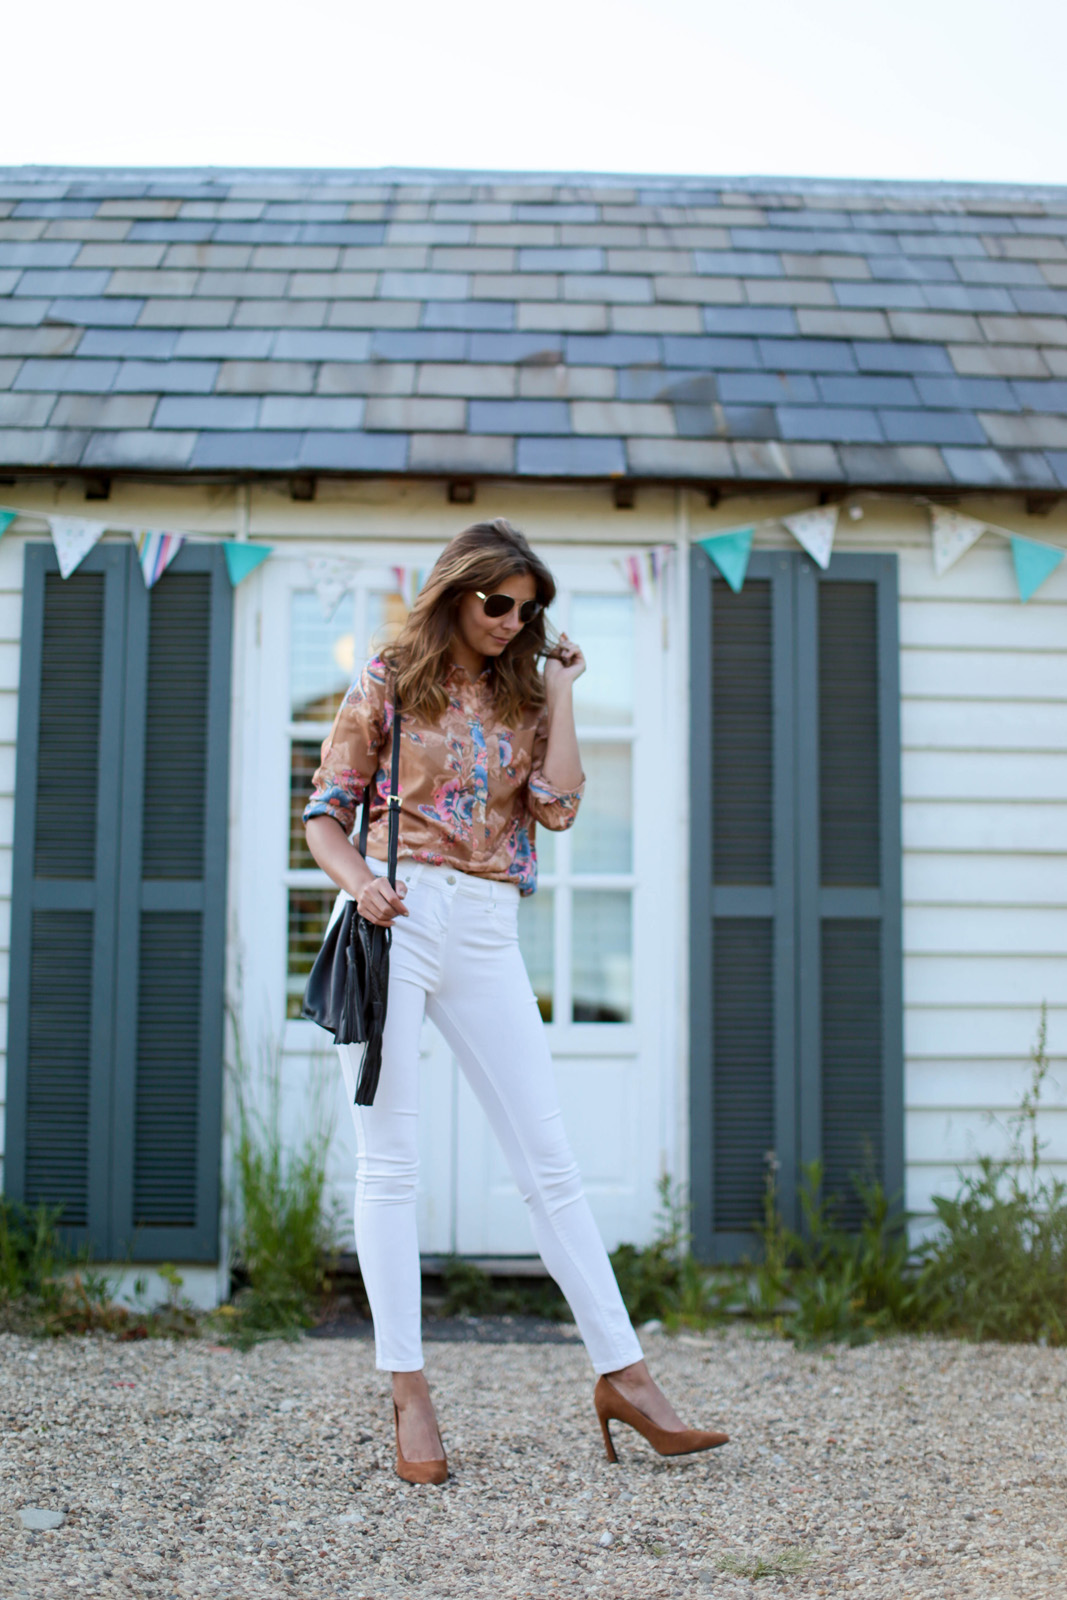 EJSTYLE - Emma Hill wears Next tan suede flare heel court shoes pumps, white skinny jeans, 70s retro floral print shirt, gold aviator sunglasses, OOTD, Nextbloggerisland